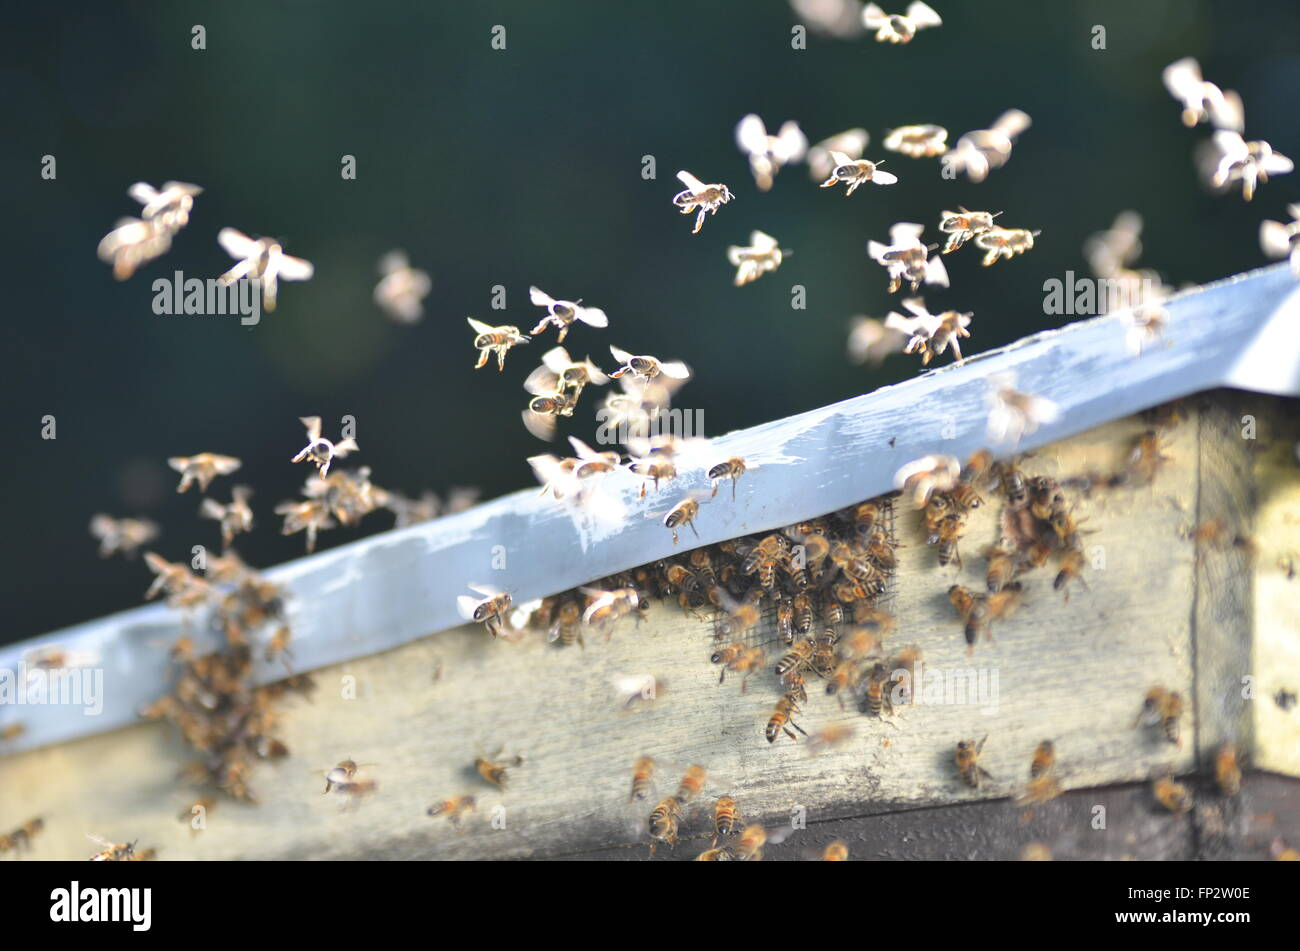 Essaim d'abeilles volant dans le rucher Photo Stock